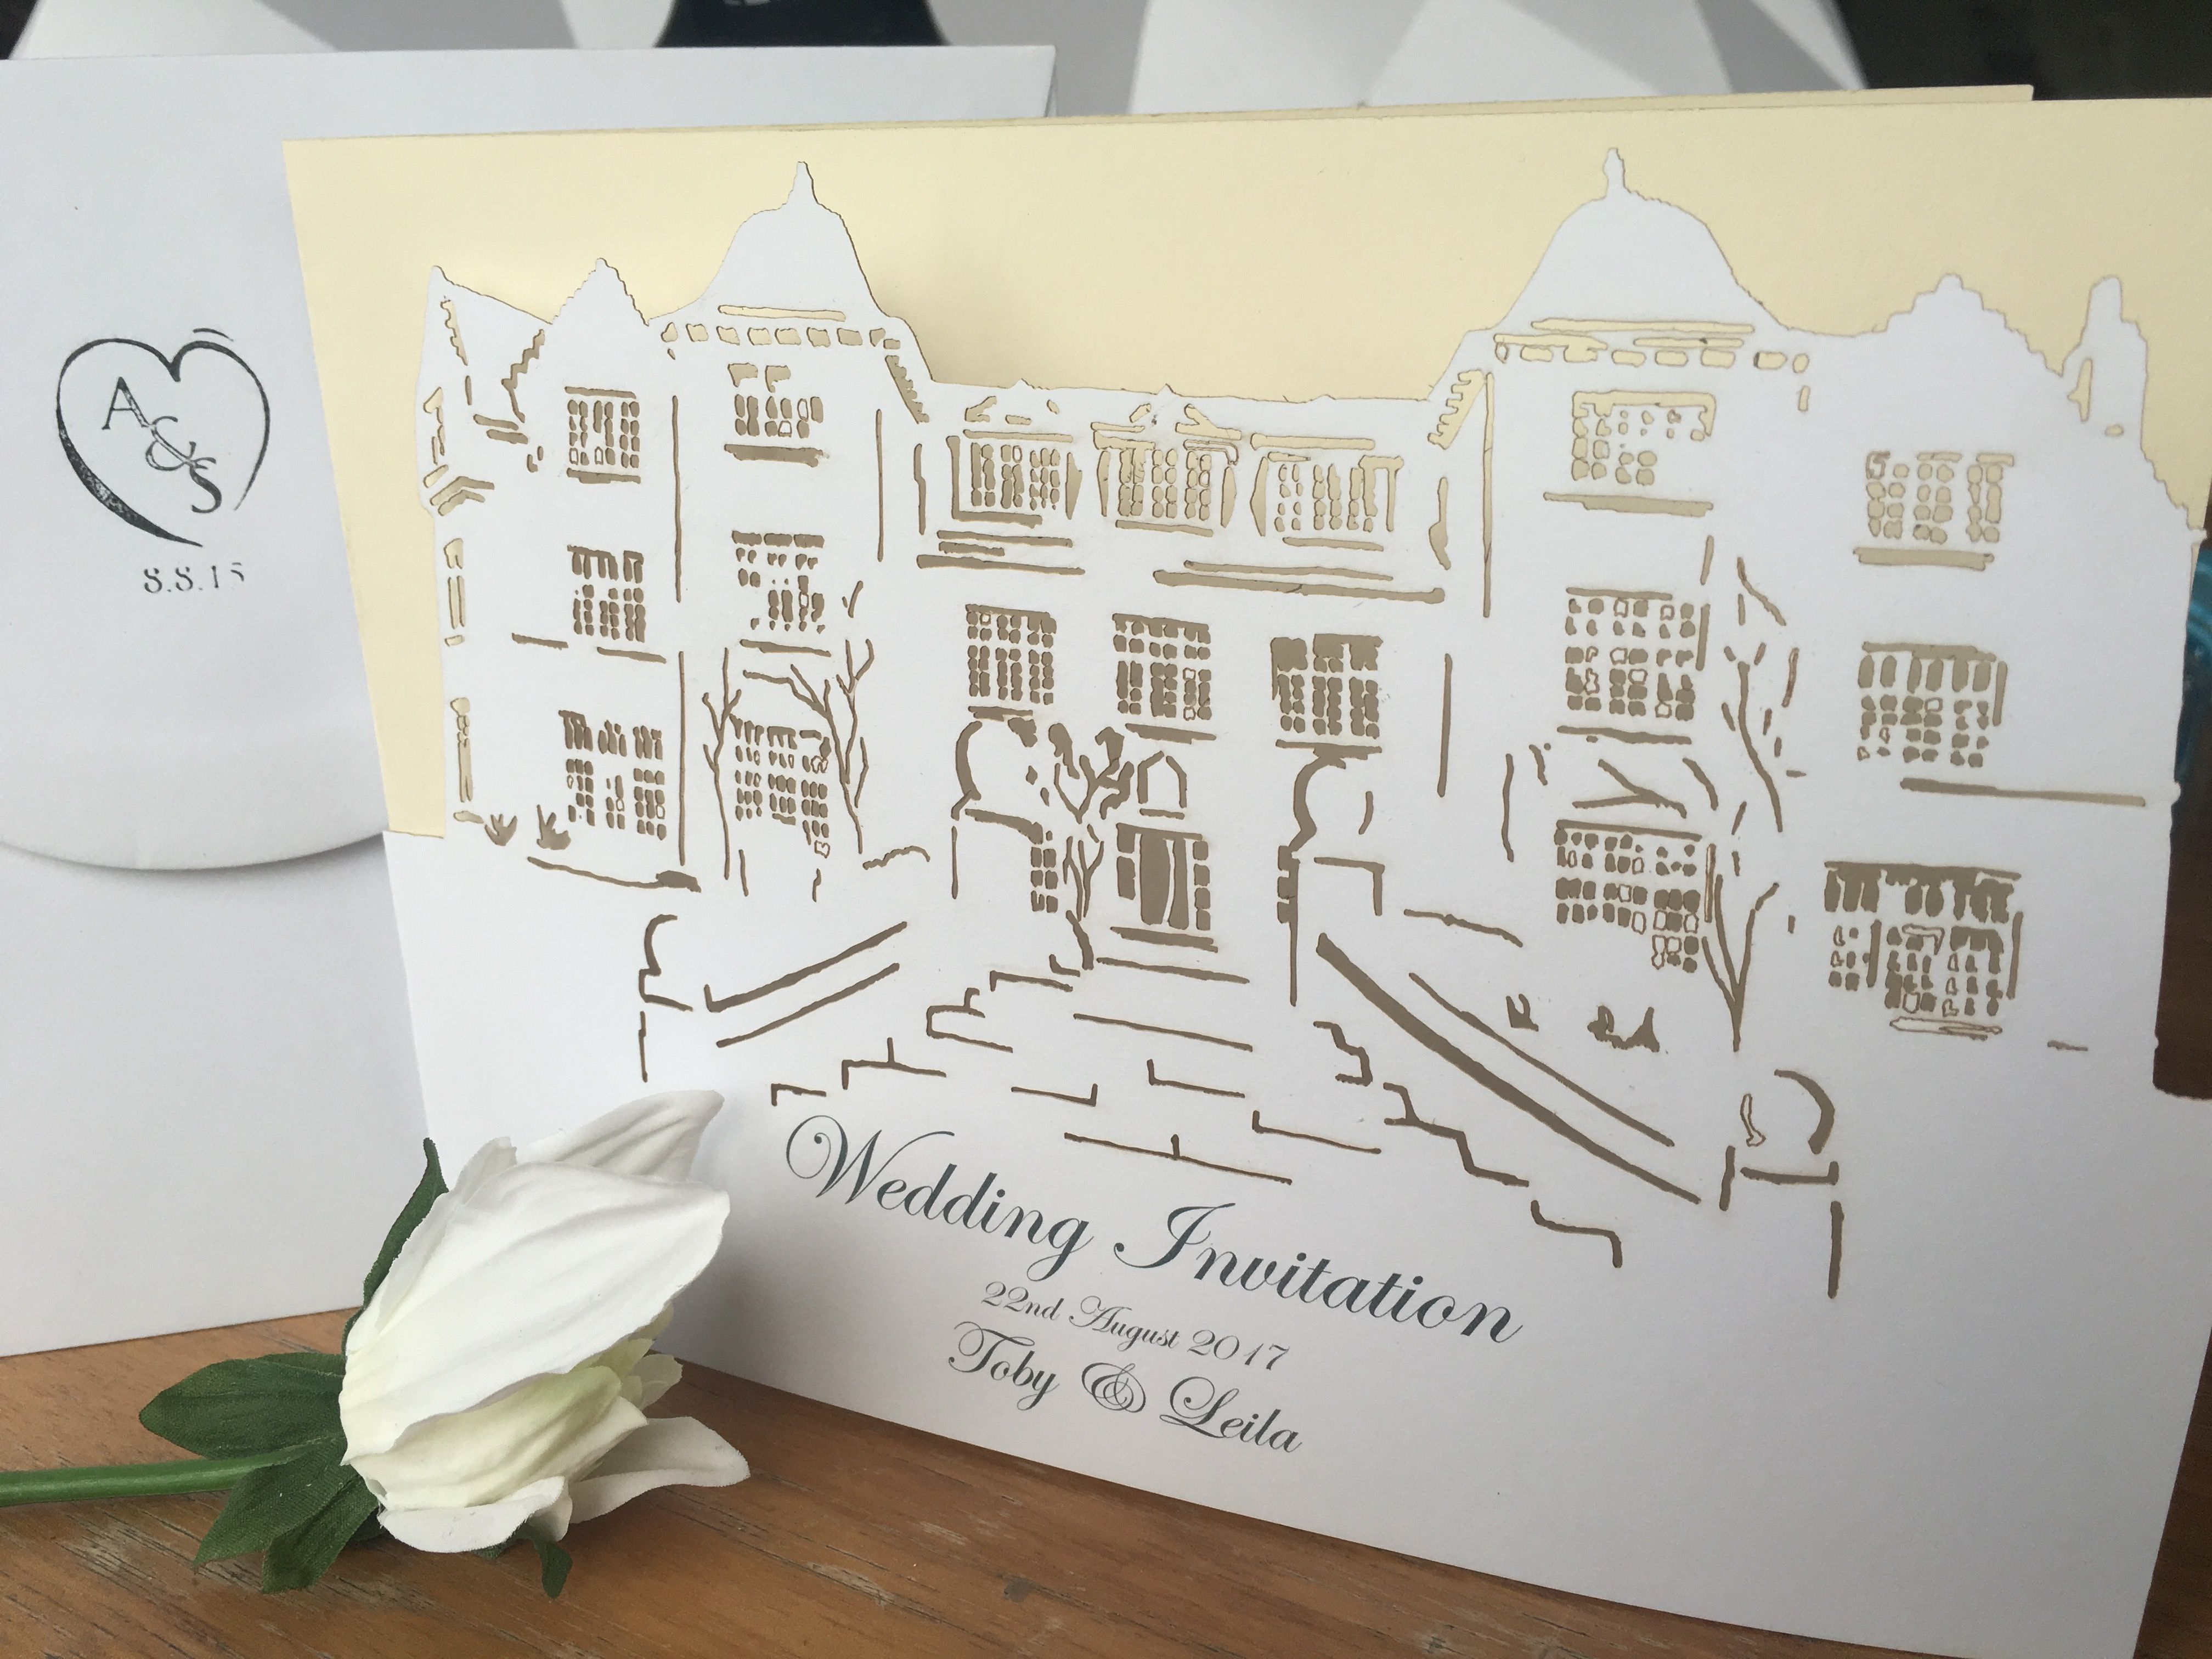 Cairns House wedding invitation. We can turn YOUR VENUE into a ...